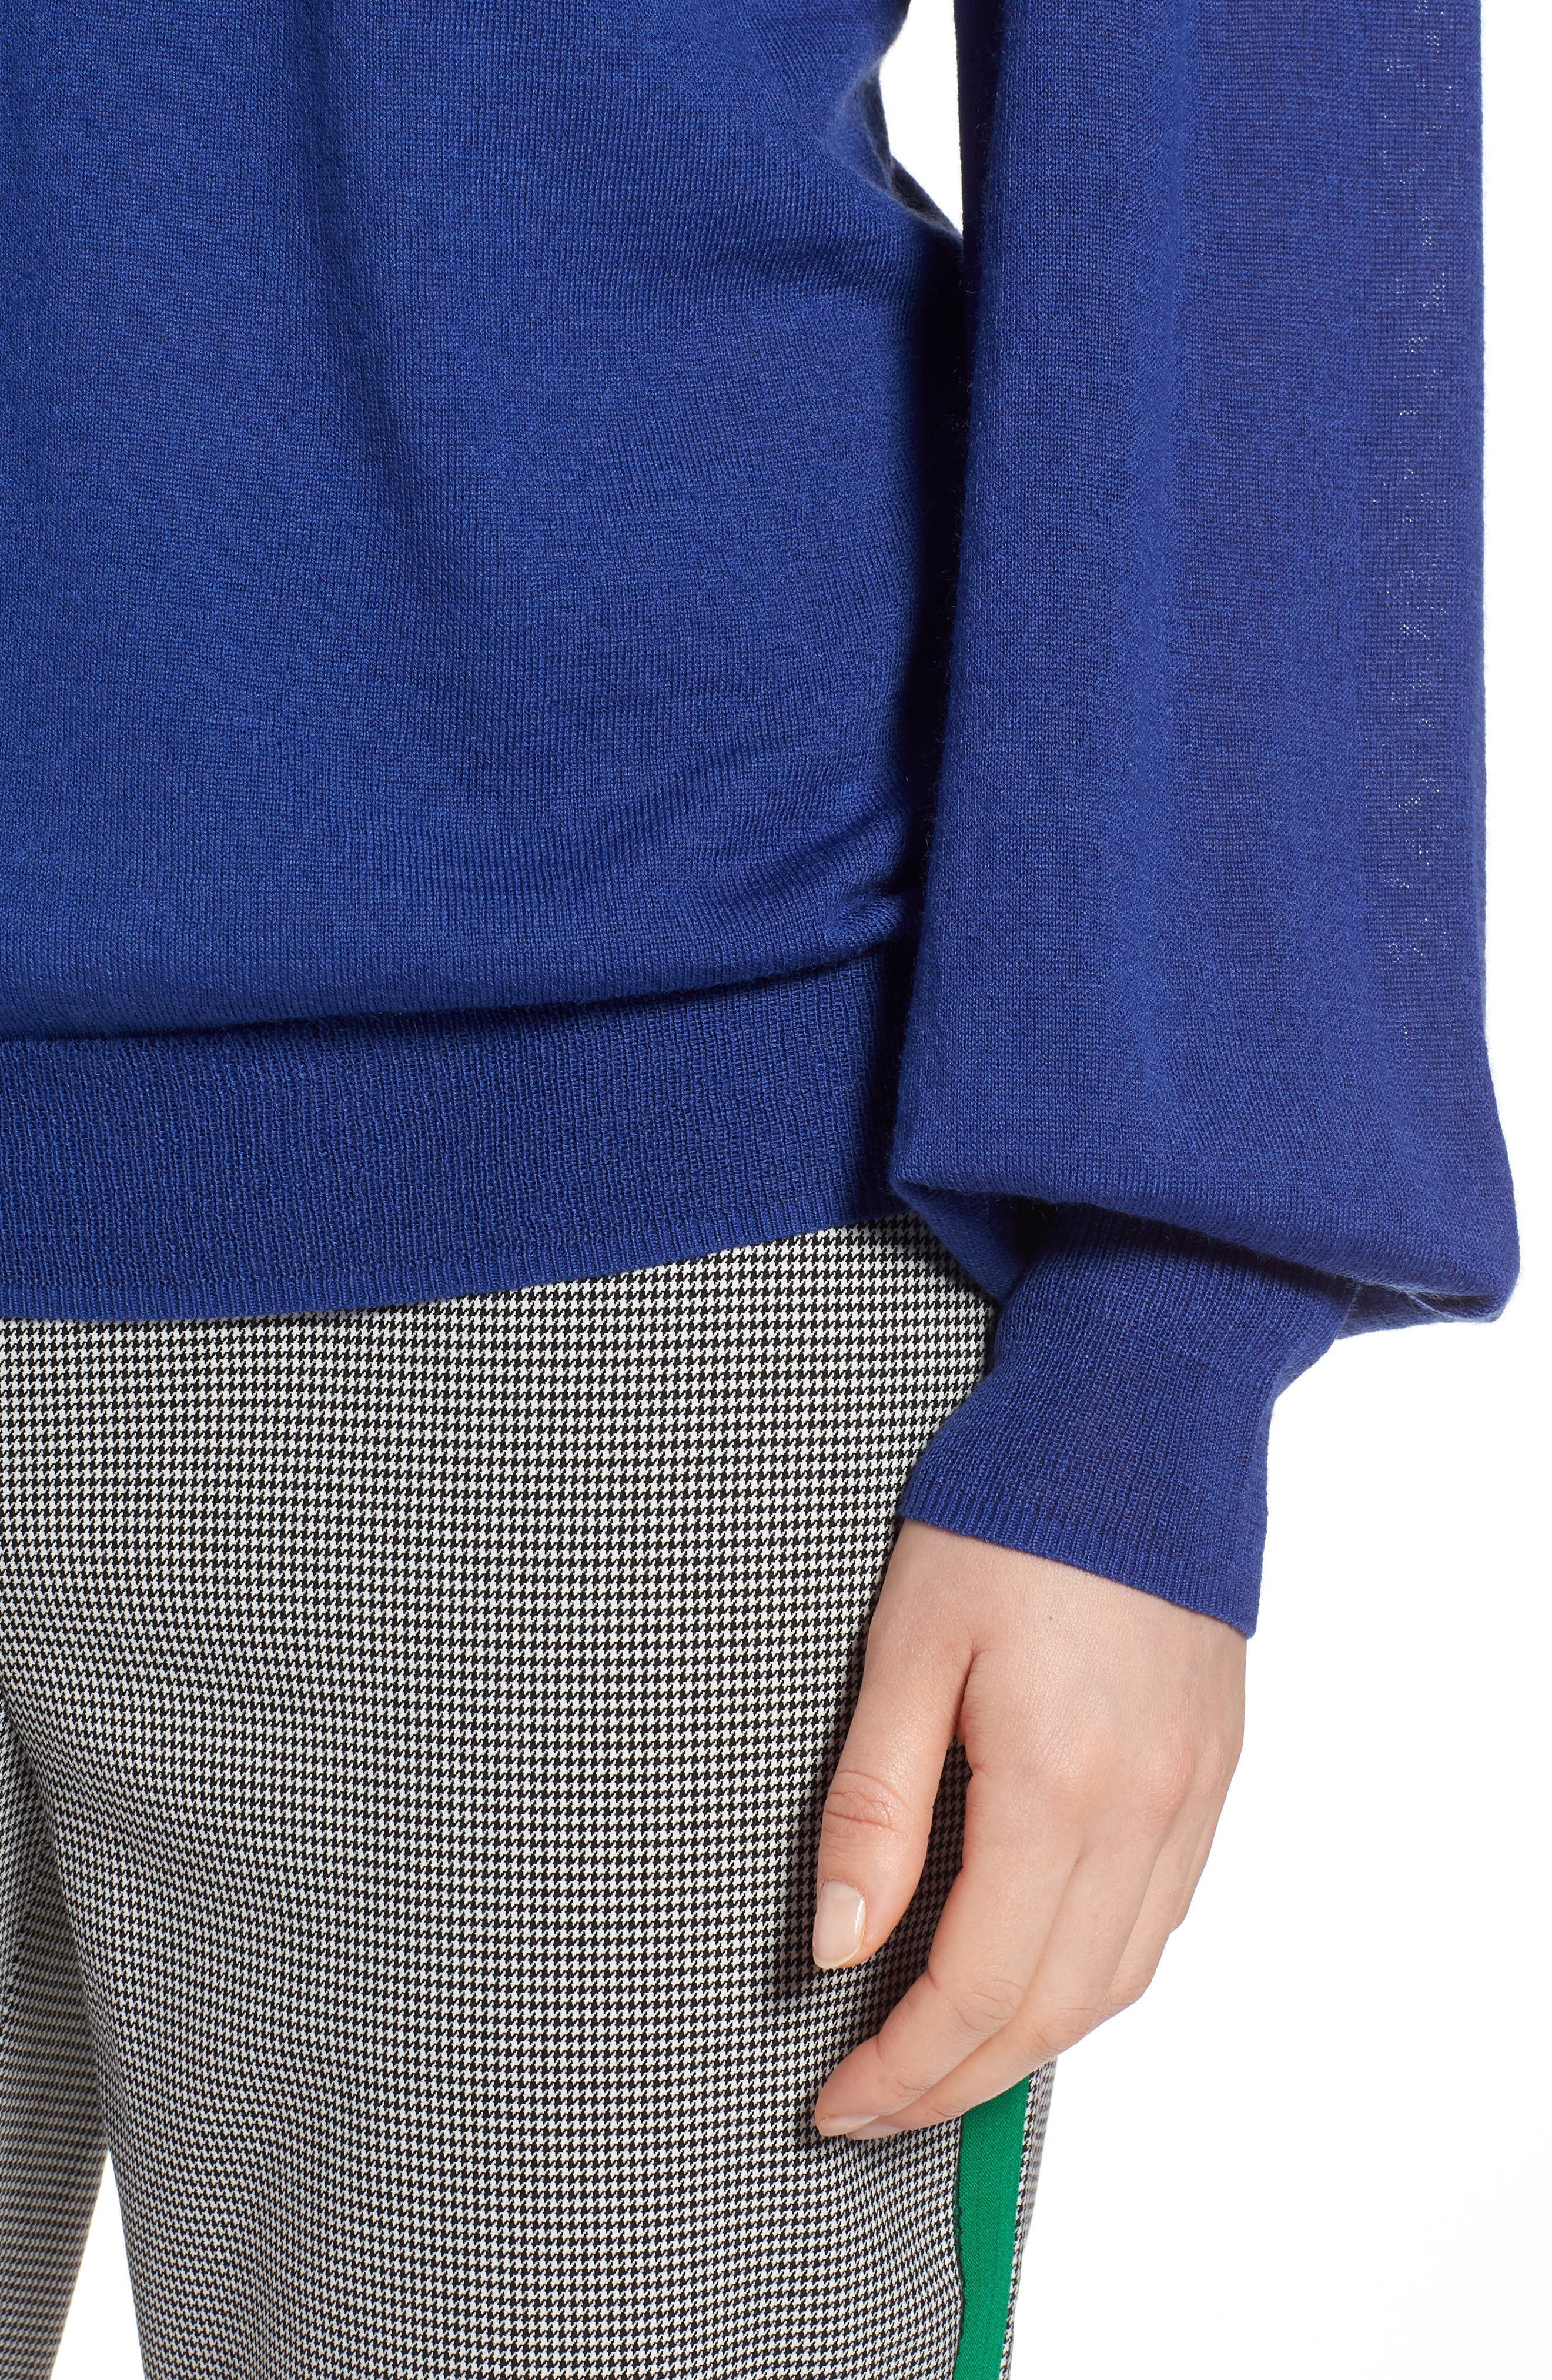 Puff Sleeve Sweater,                             Alternate thumbnail 35, color,